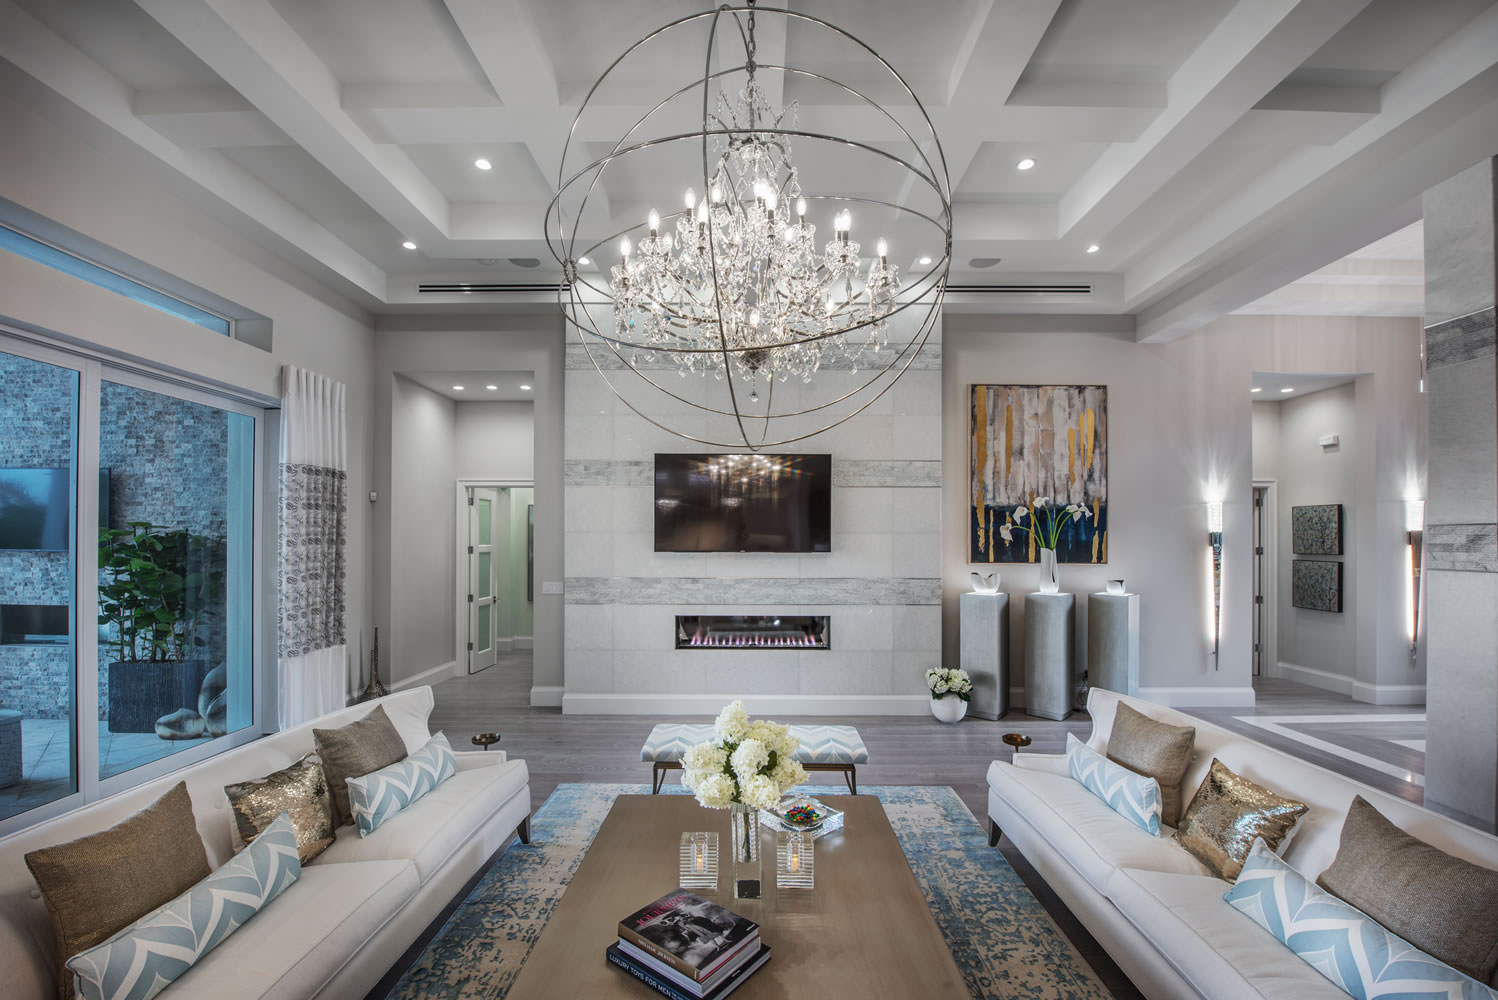 Make the Best of Your Home Interior Design